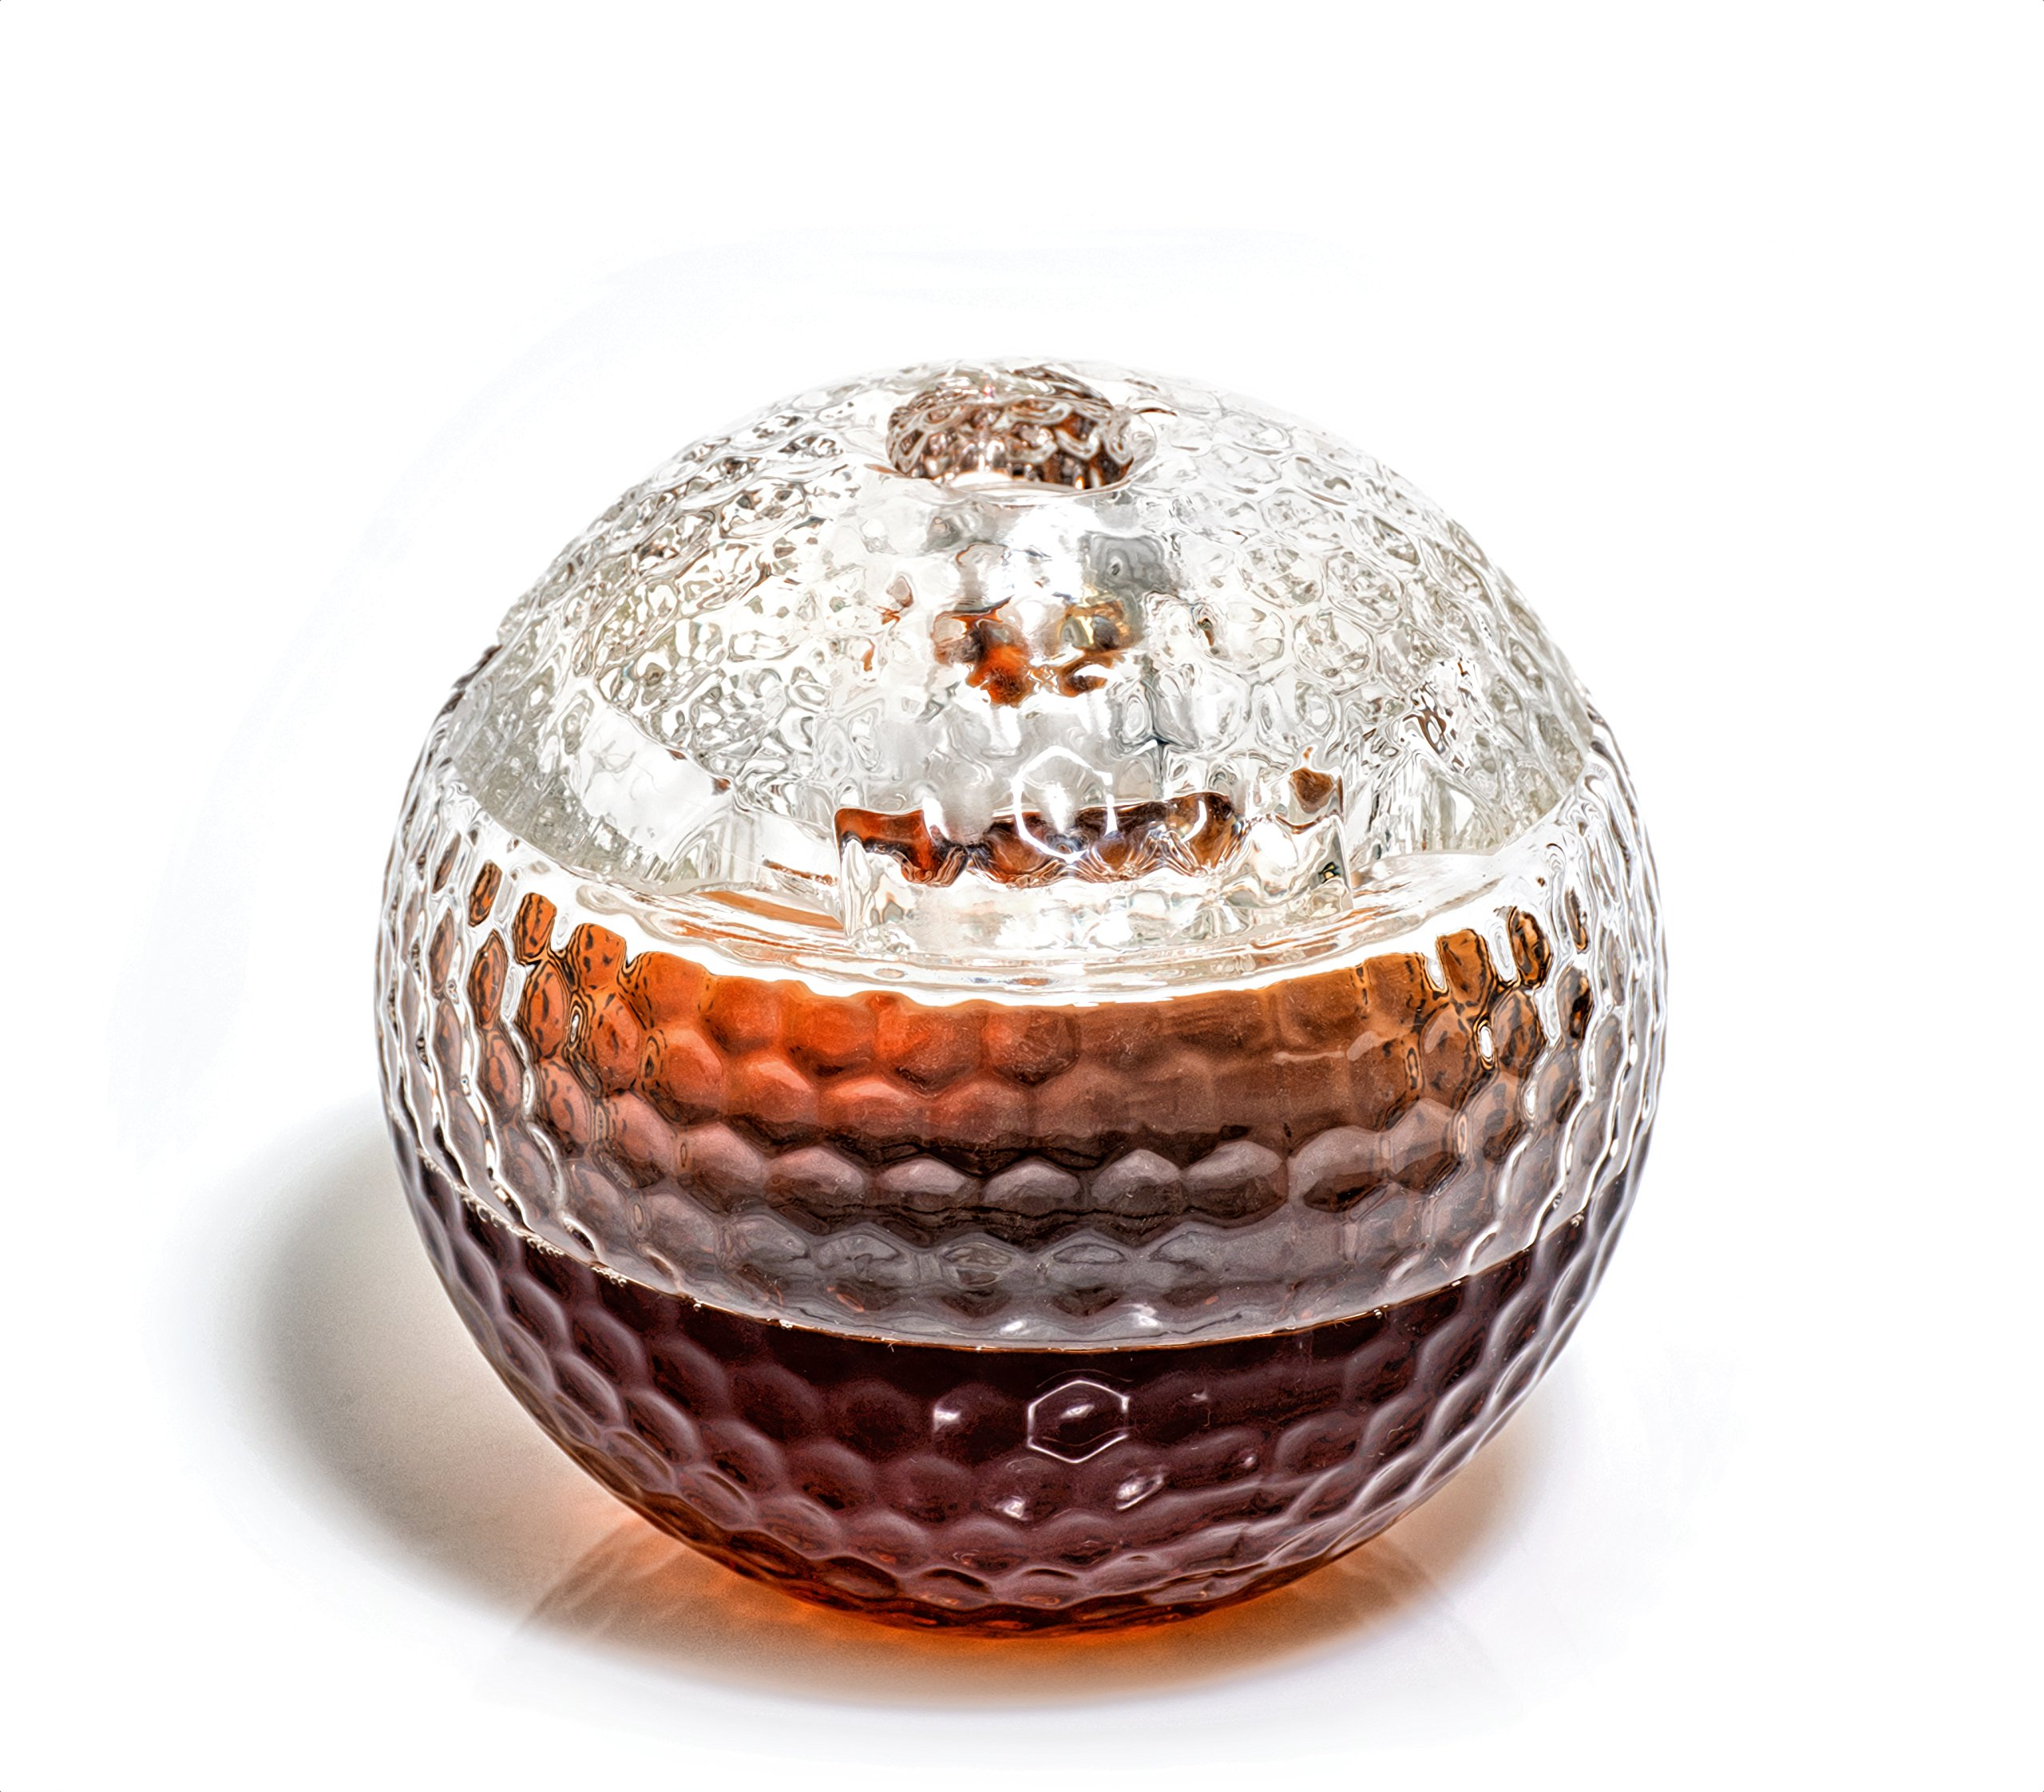 Golf Ball Liquor Decanter - Golf Gifts for Men & Women Who Love Scotch, Whiskey, Bourbon, etc. - Home Decor Golf Accessories, Gifts for Golfers (1000ml Whiskey Decanter) Golfing Gift for Men/Women by Prestige Decanters (Image #1)